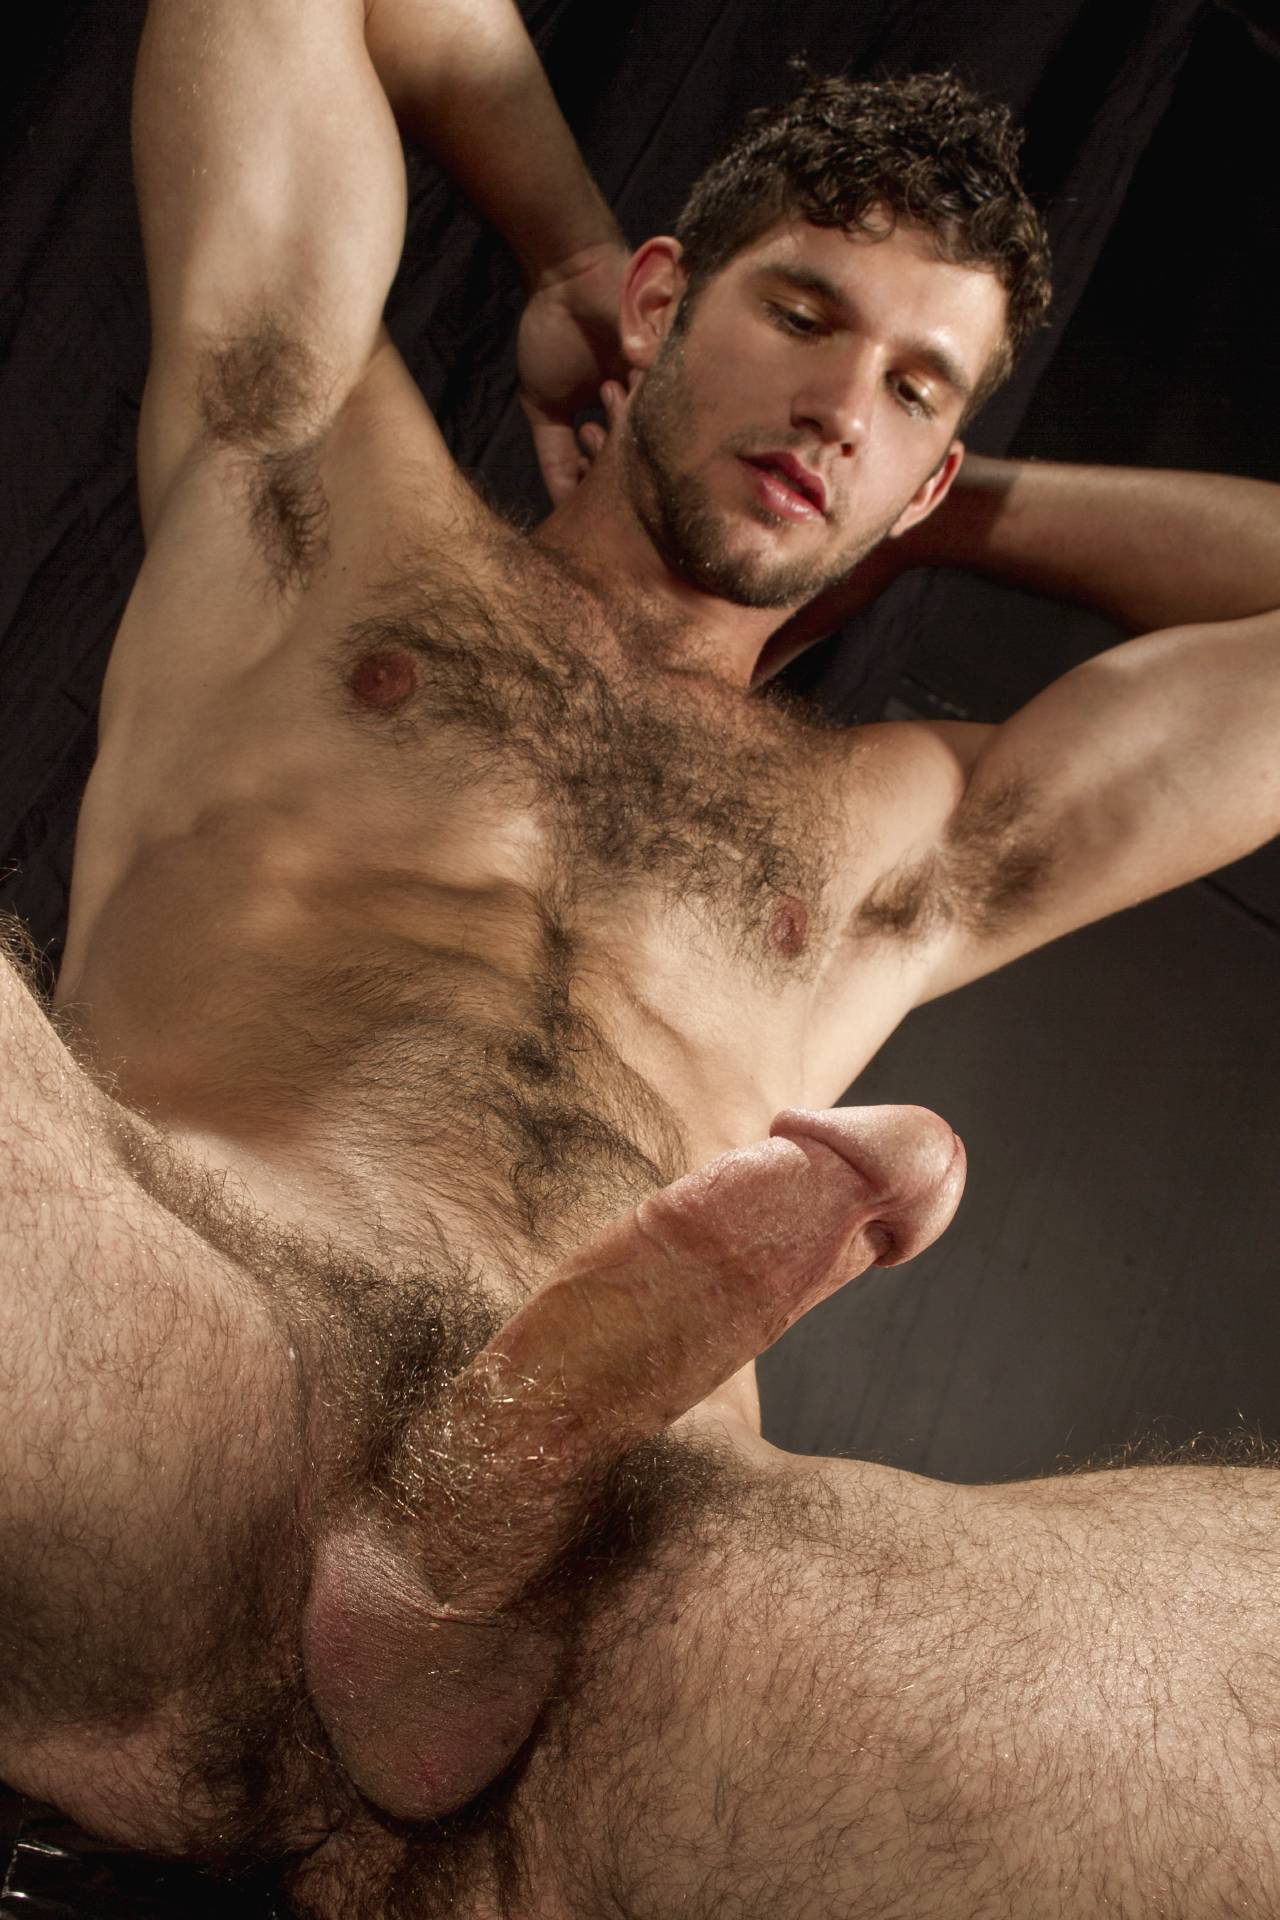 Hairy gay group porn-4695